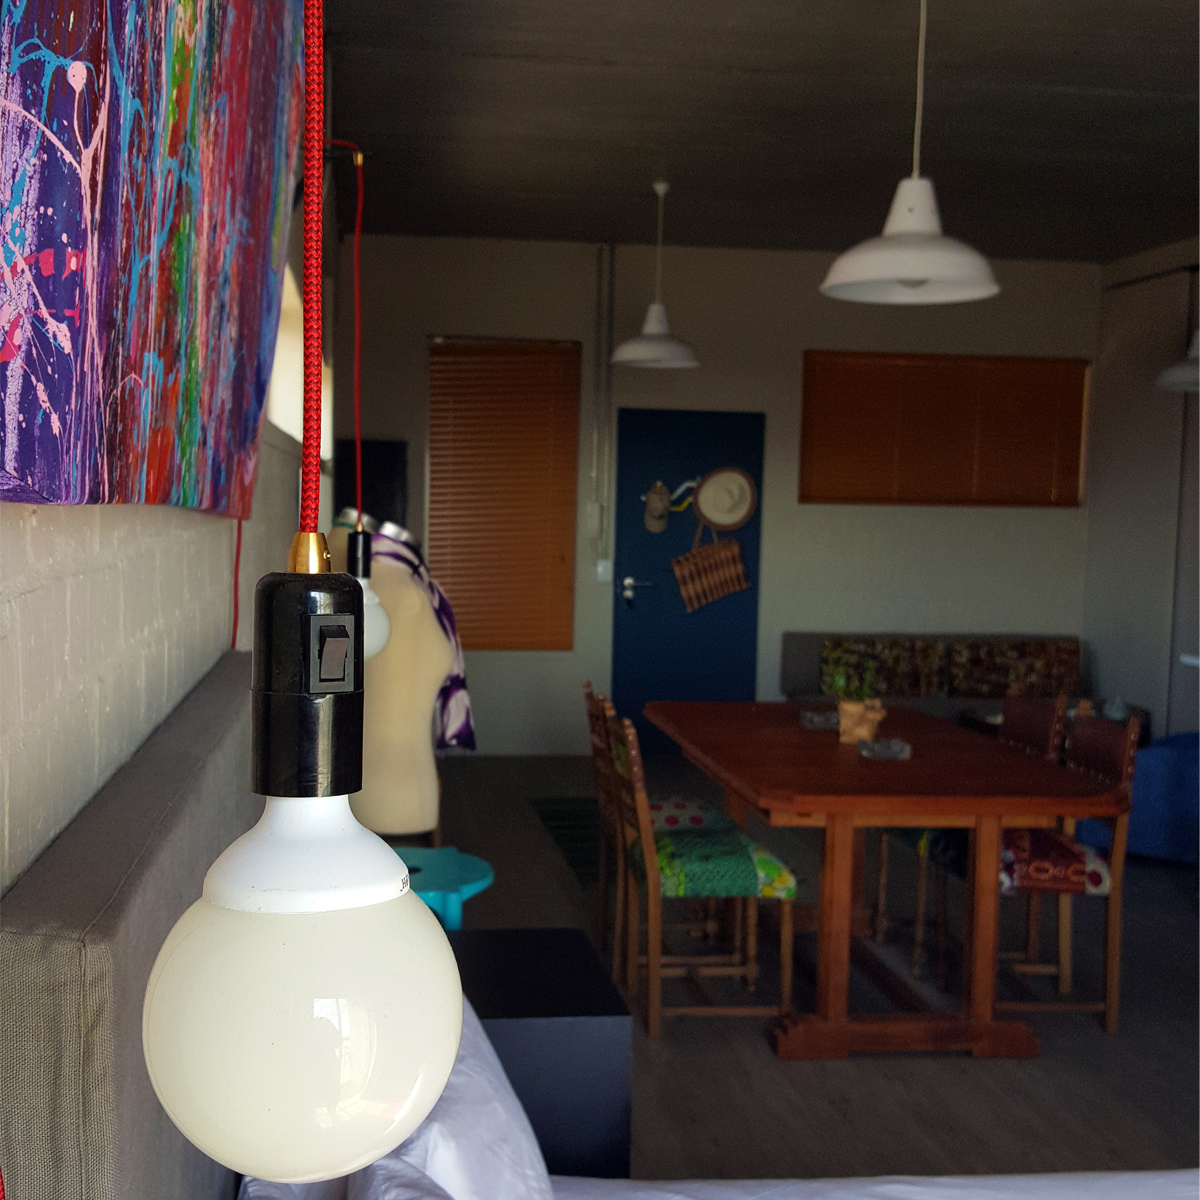 cape town accommodation cape town airbnb cape town apartments for rent cape town studio airbnb 08